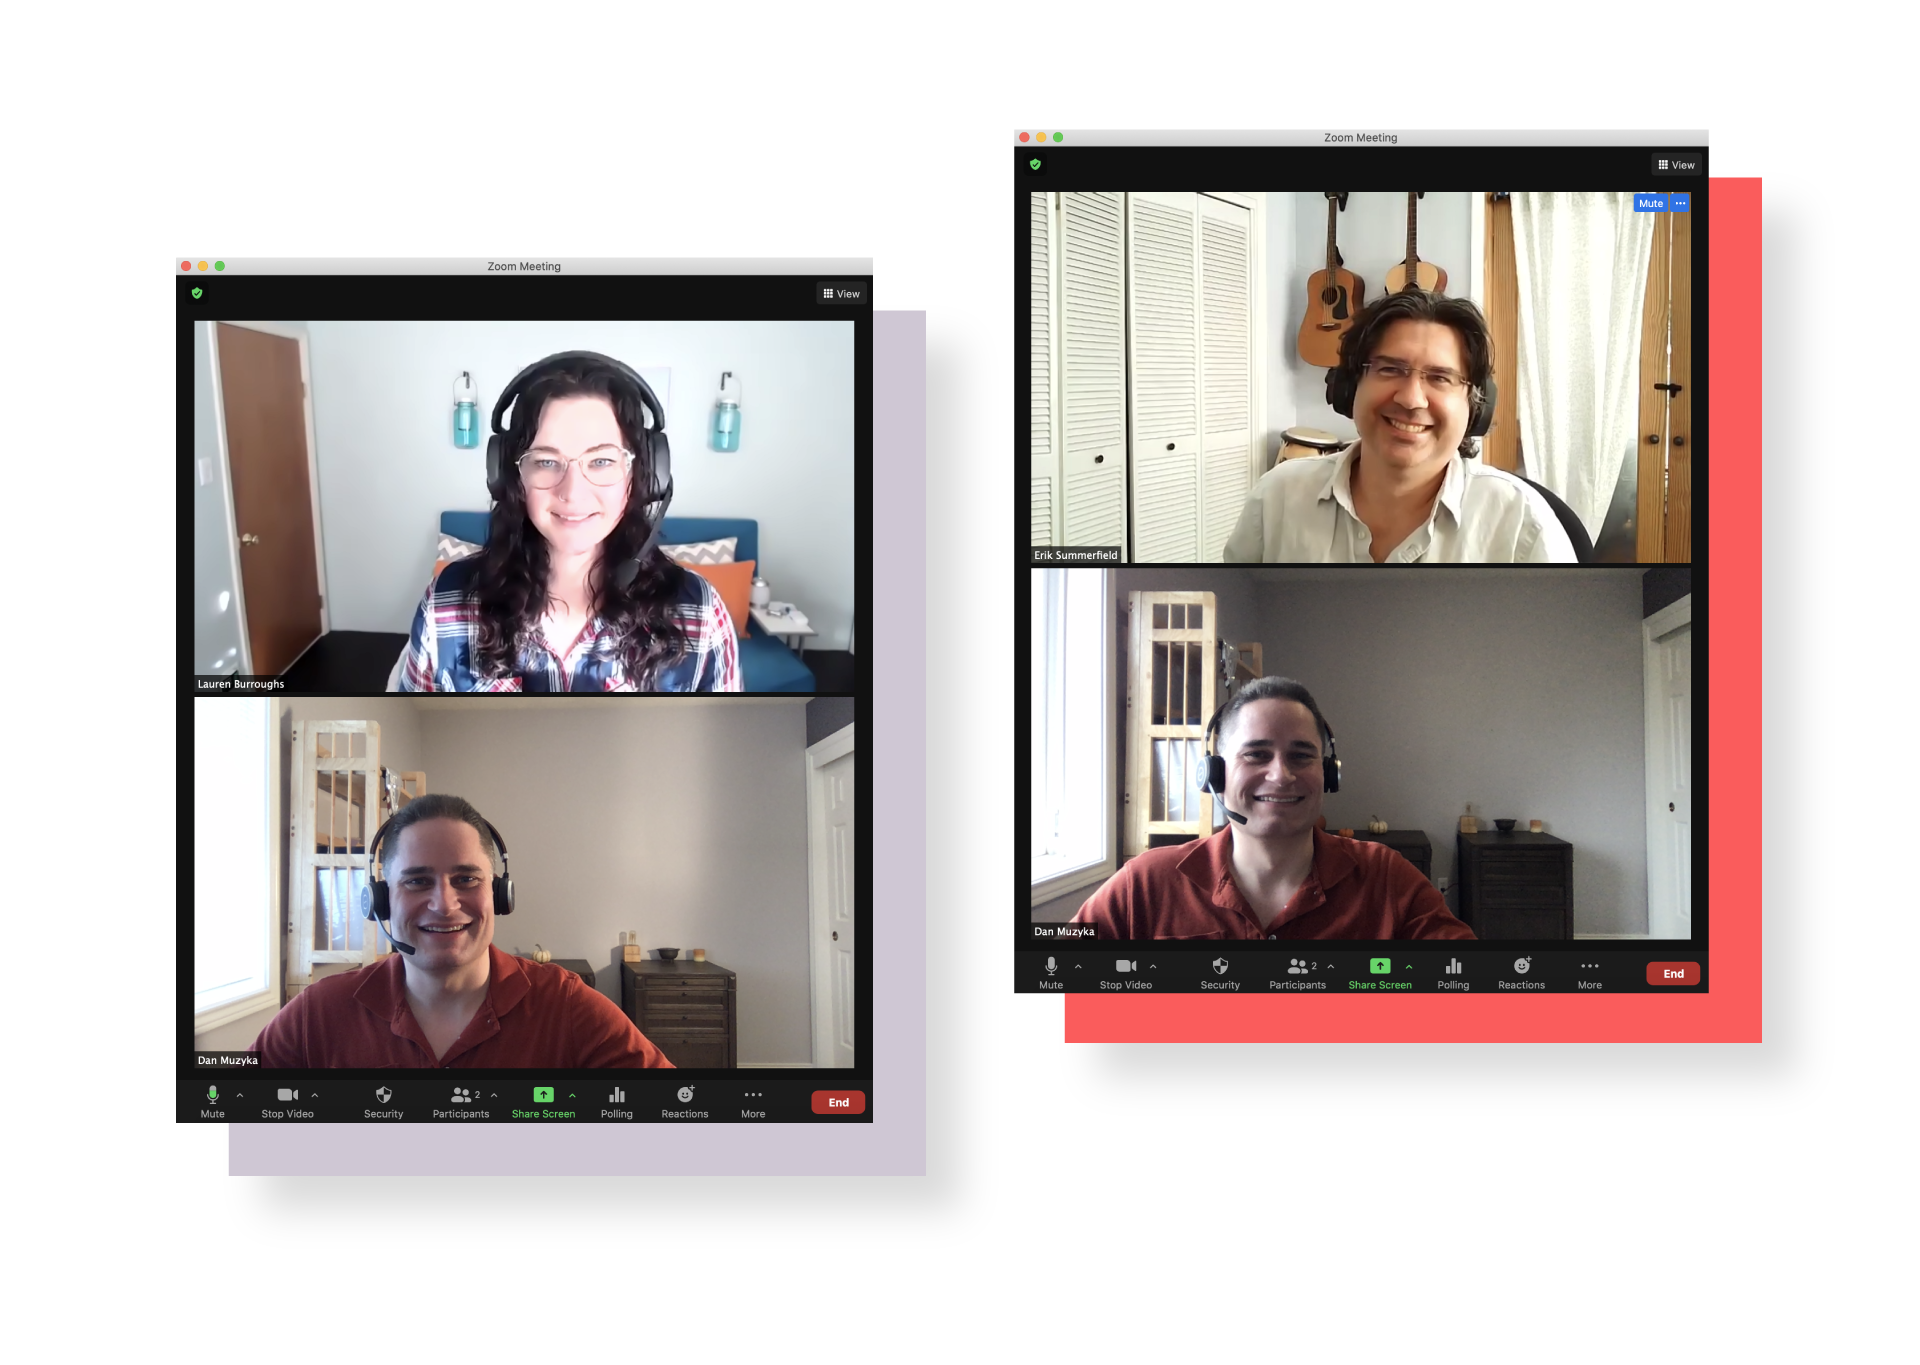 Phase2 Employee Meeting Remotely